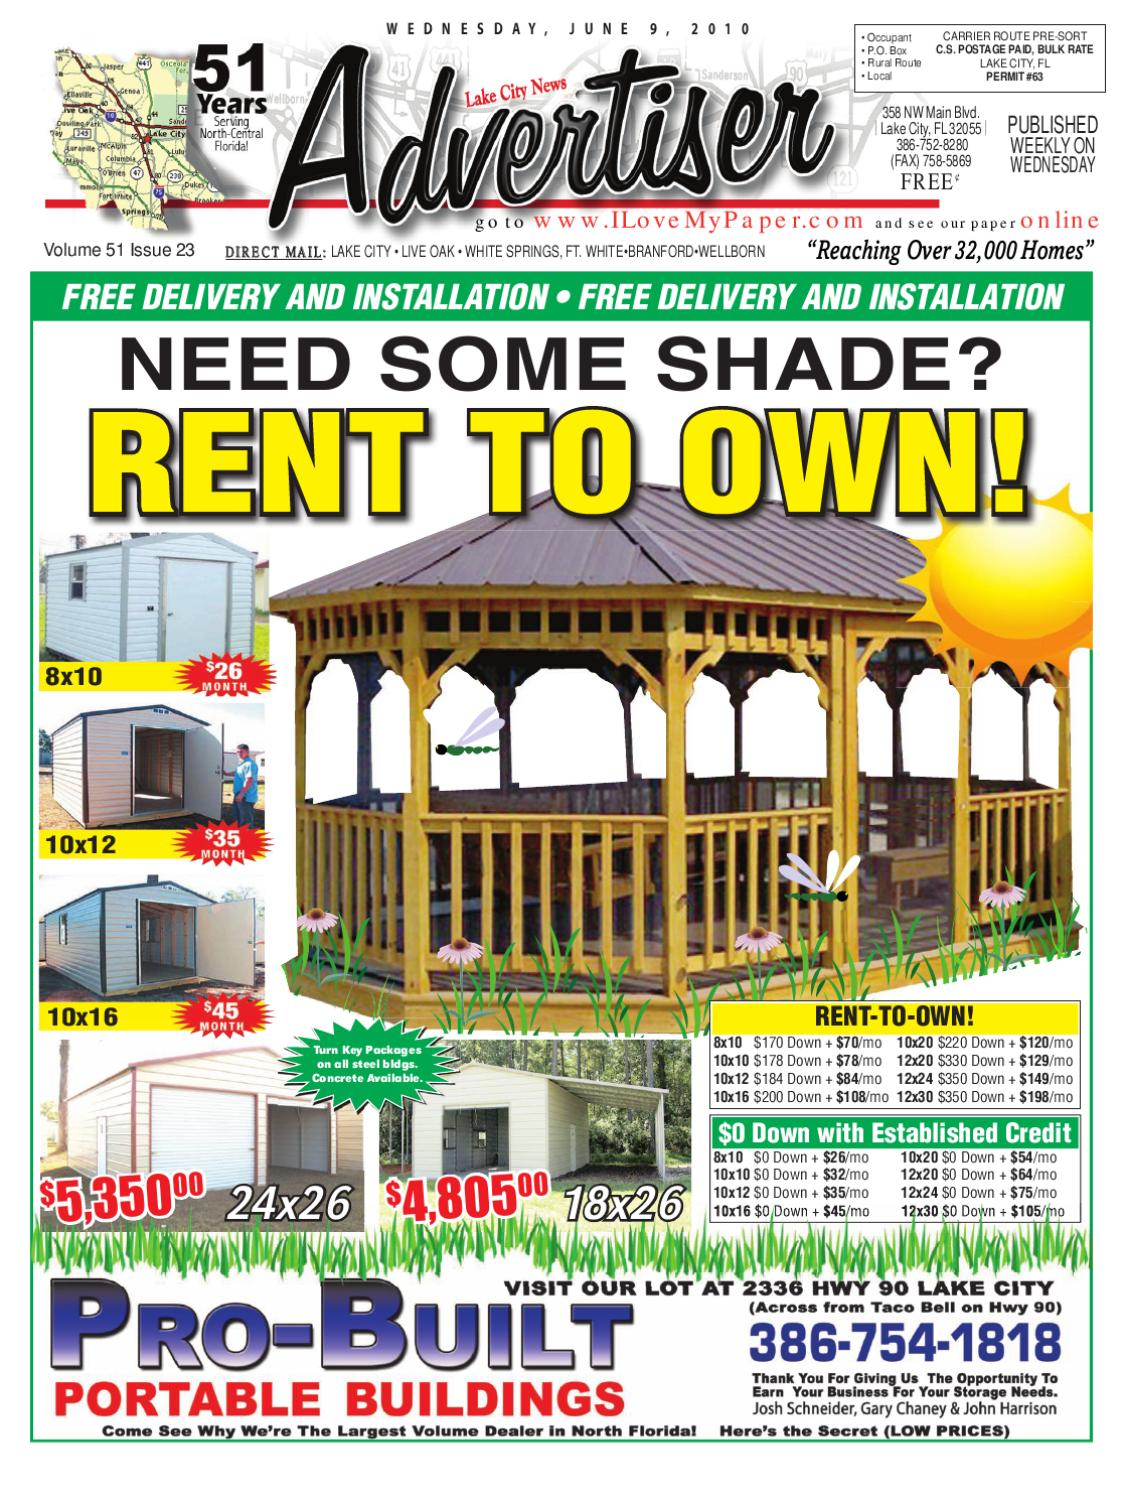 Newspaper Lake City Advertiser Volume 51 Issue 23 by SCBUSA